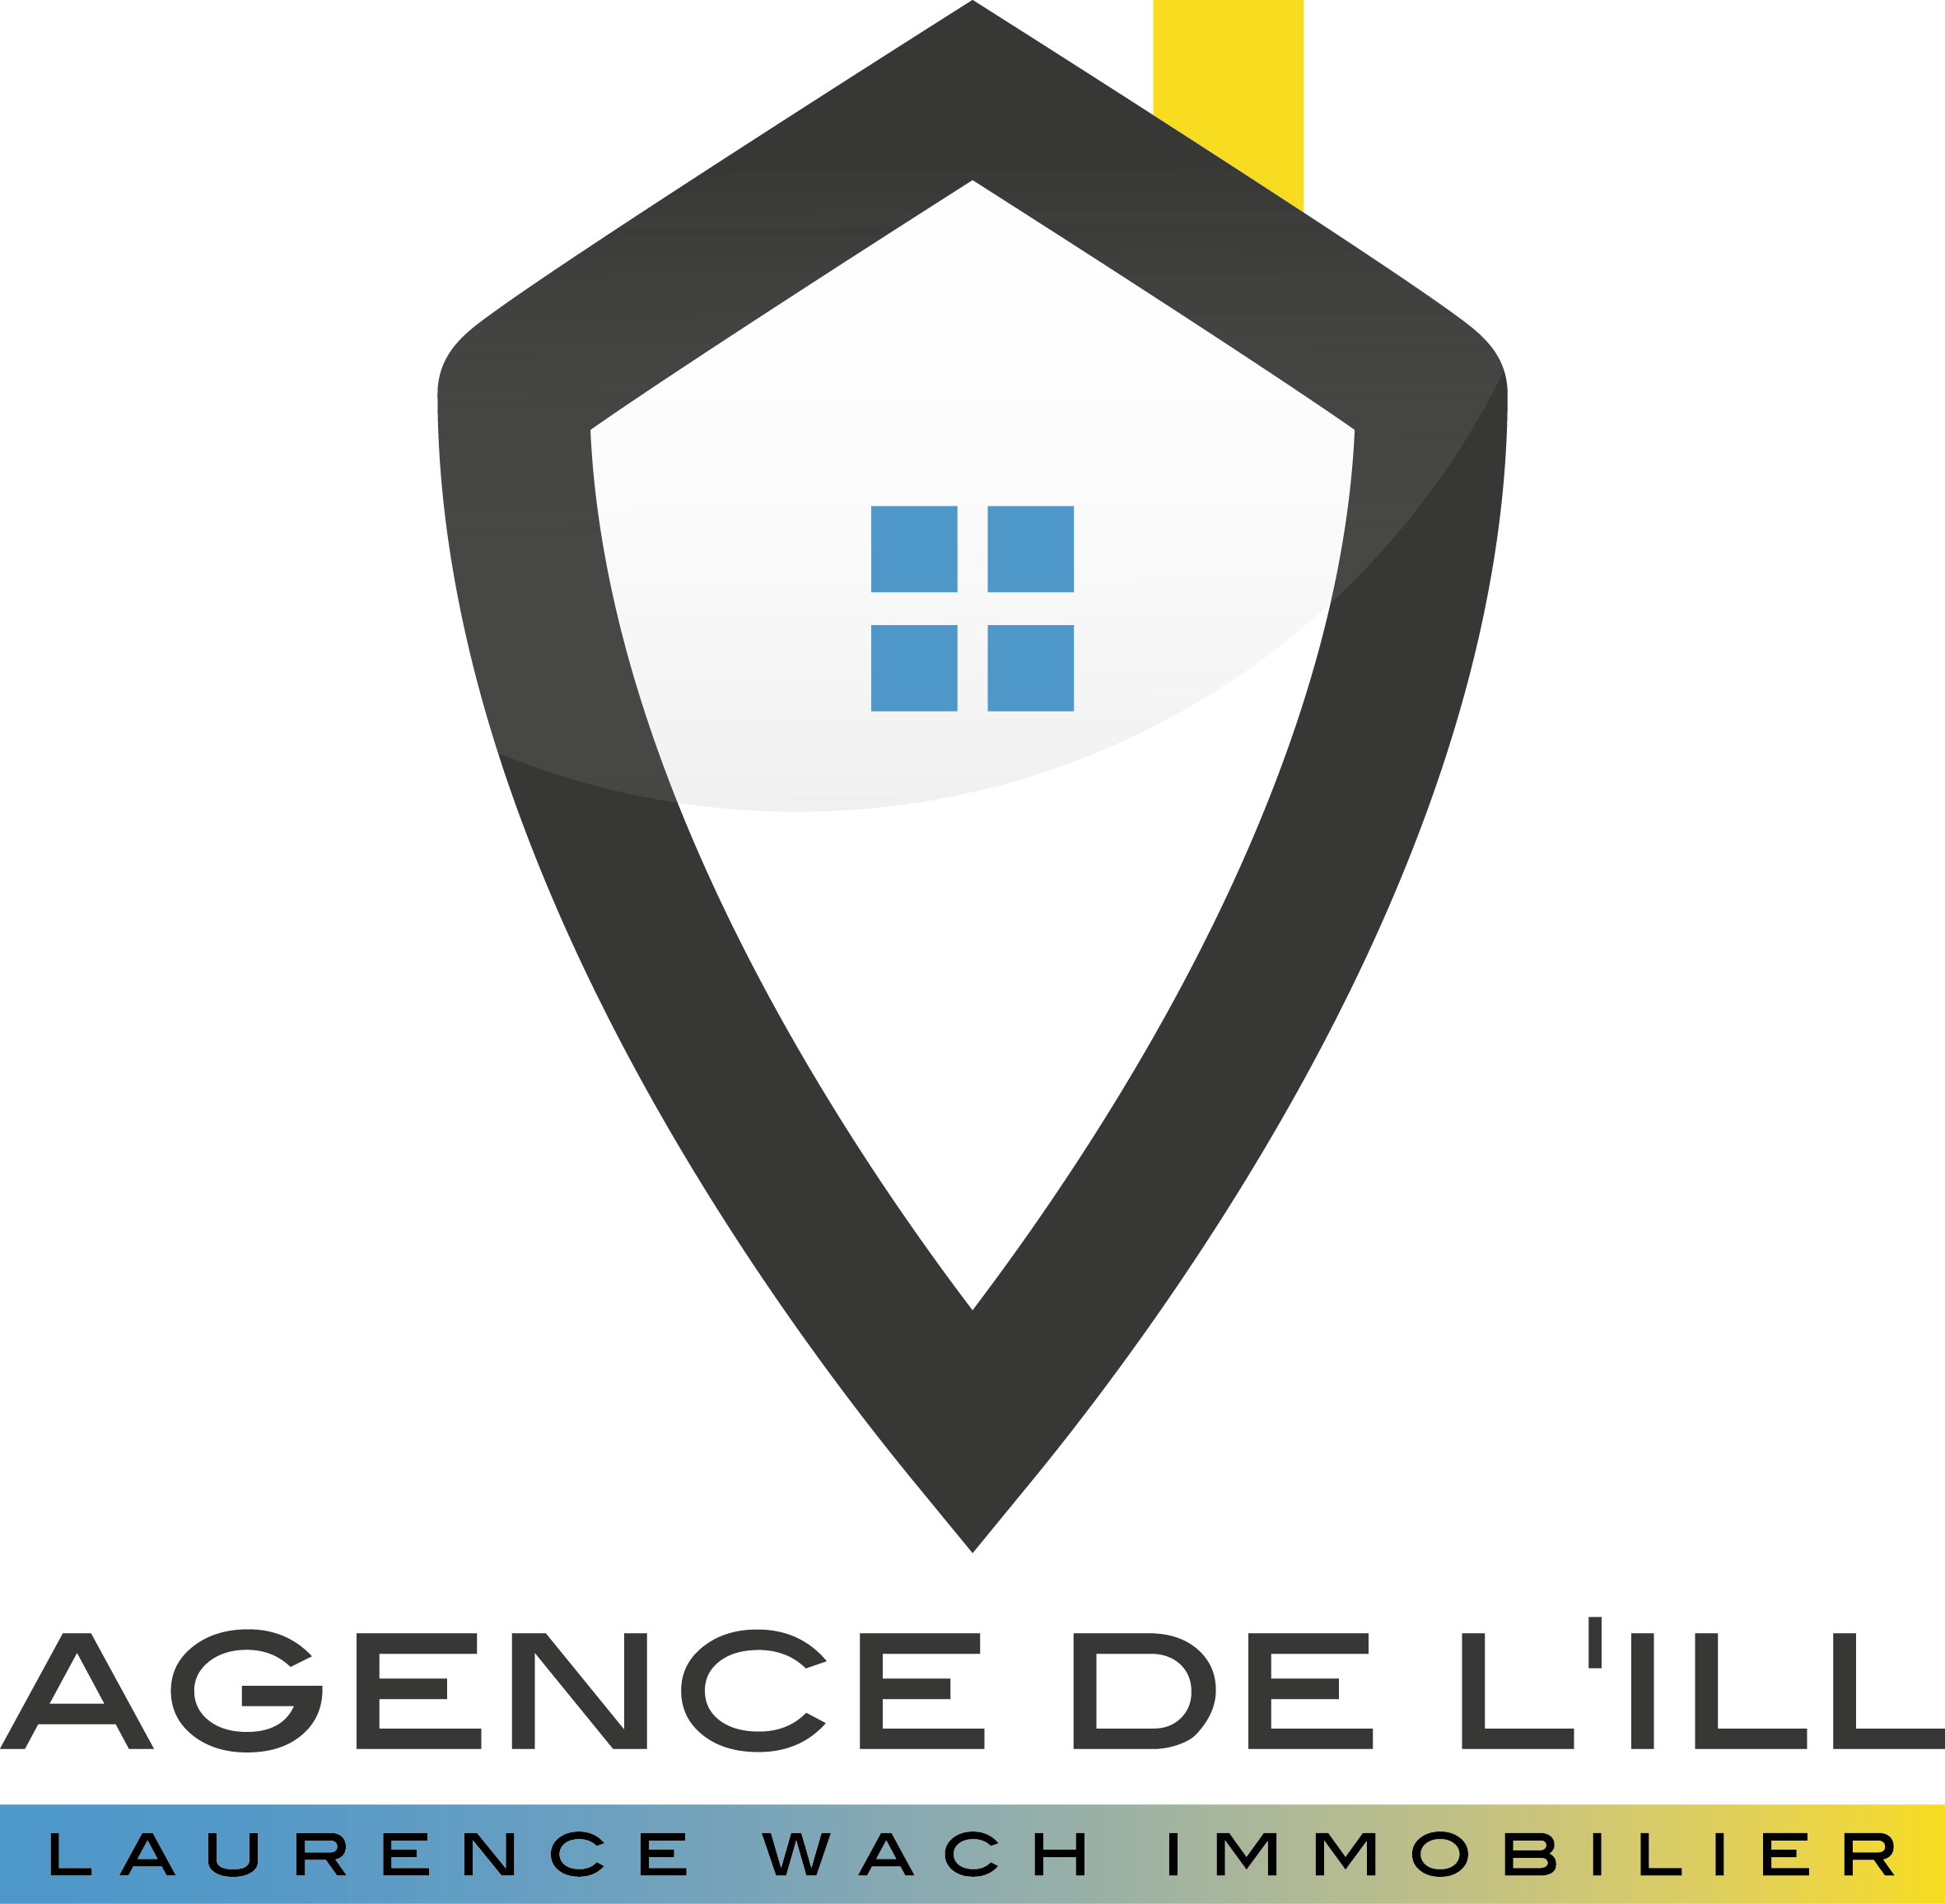 Biens agence de l 39 ill laurence wach immobilier for Agence de location